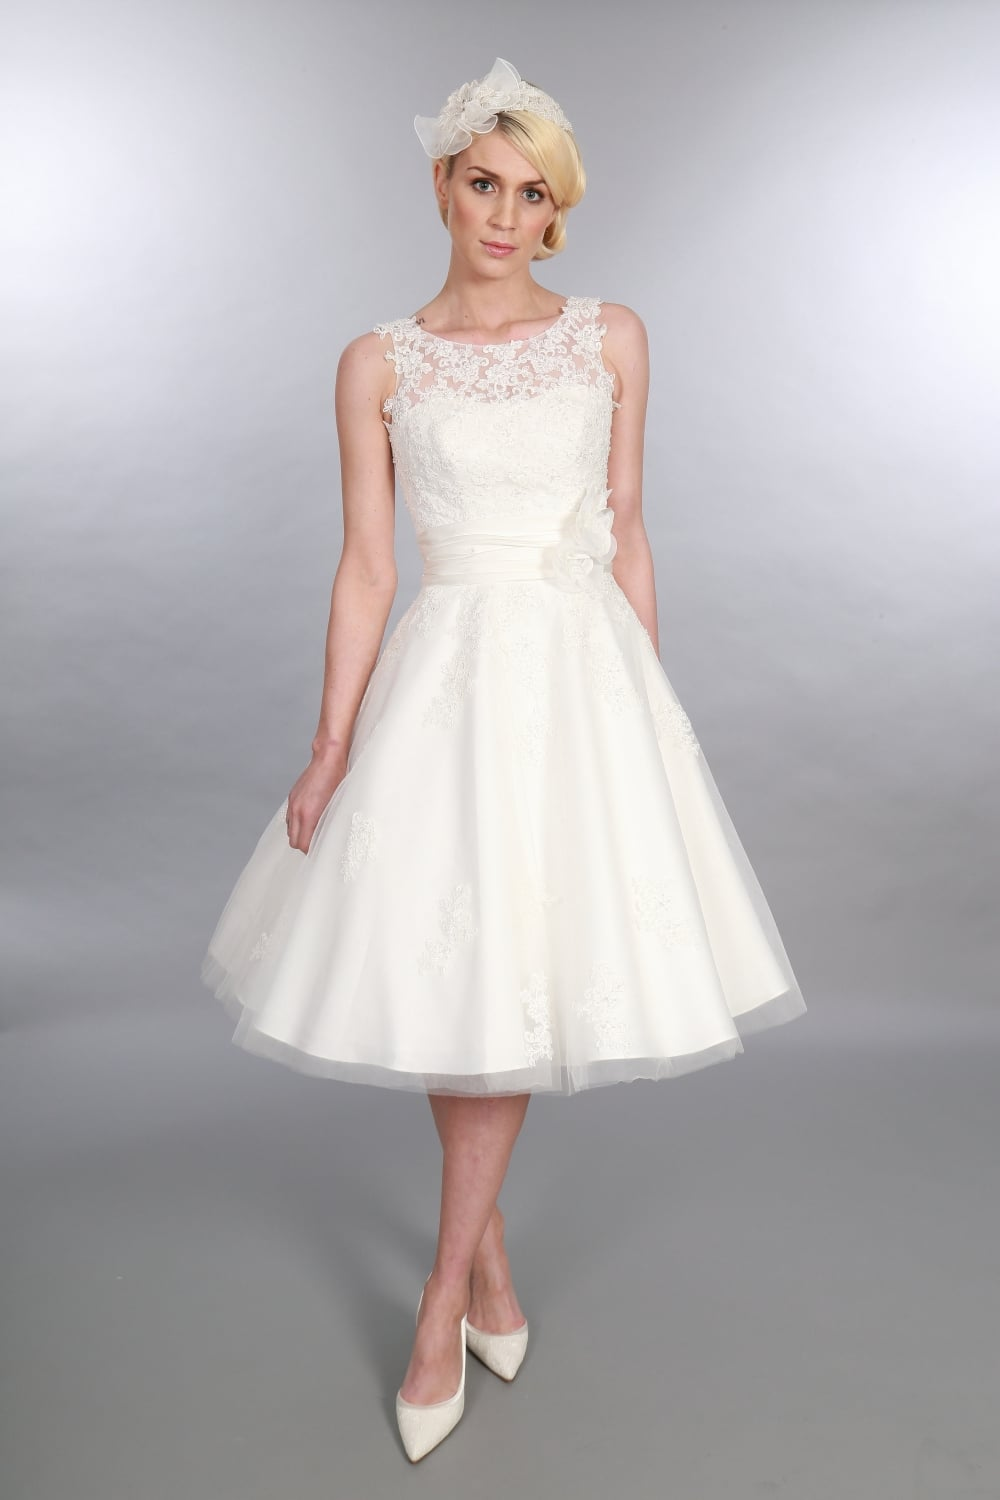 Timeless Chic Anara Tea Length Lace Tulle Short Vintage Wedding Dress - Mid Length Wedding Dresses